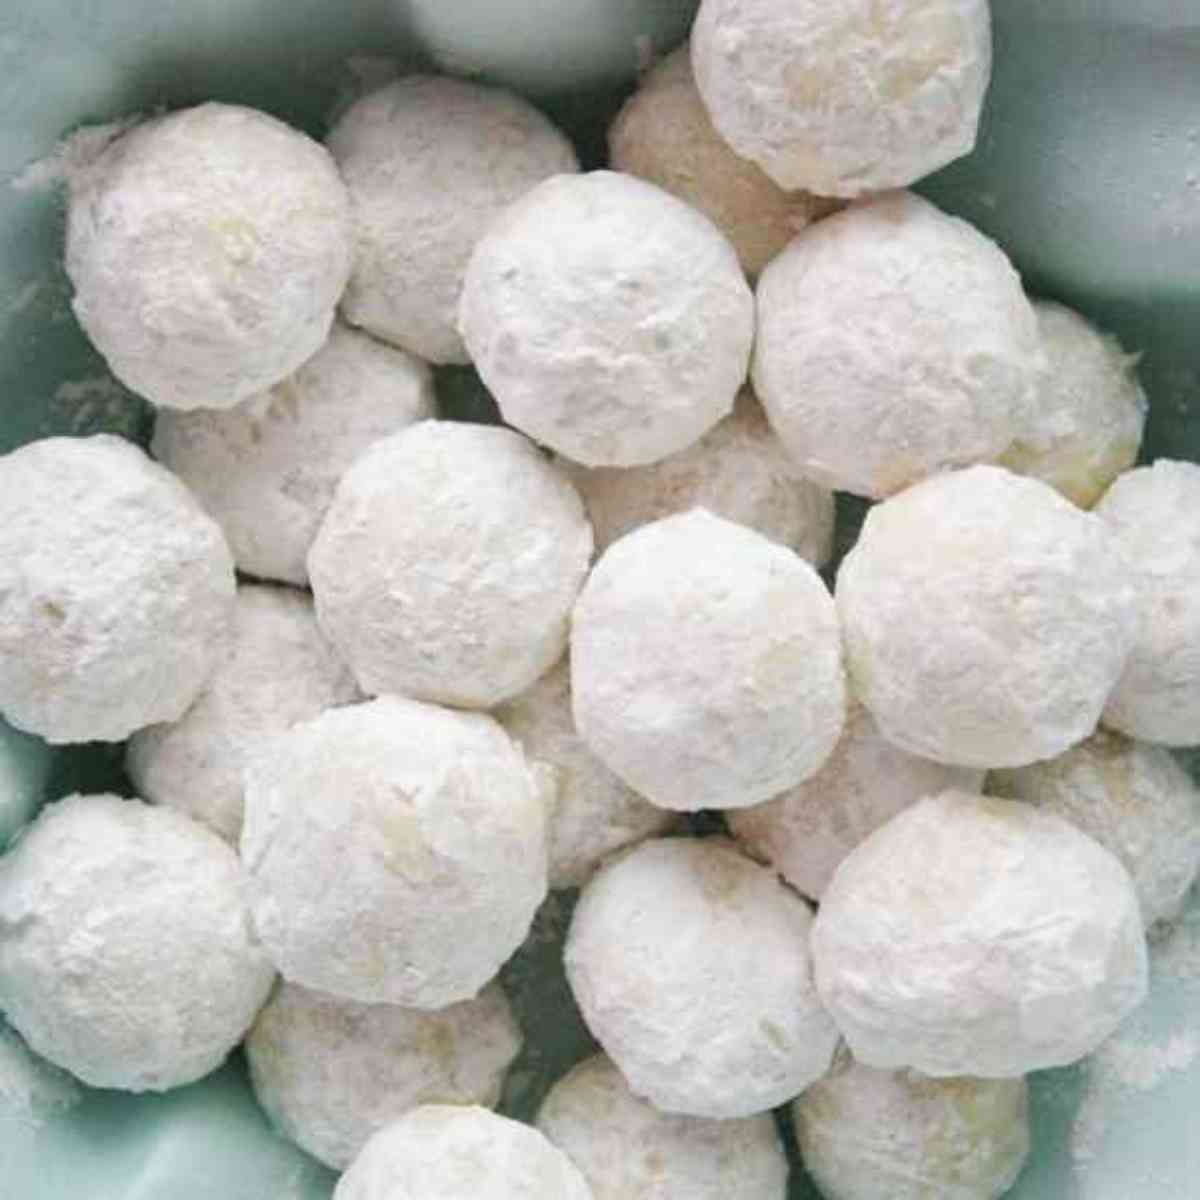 A pile of powdery snowball cookies